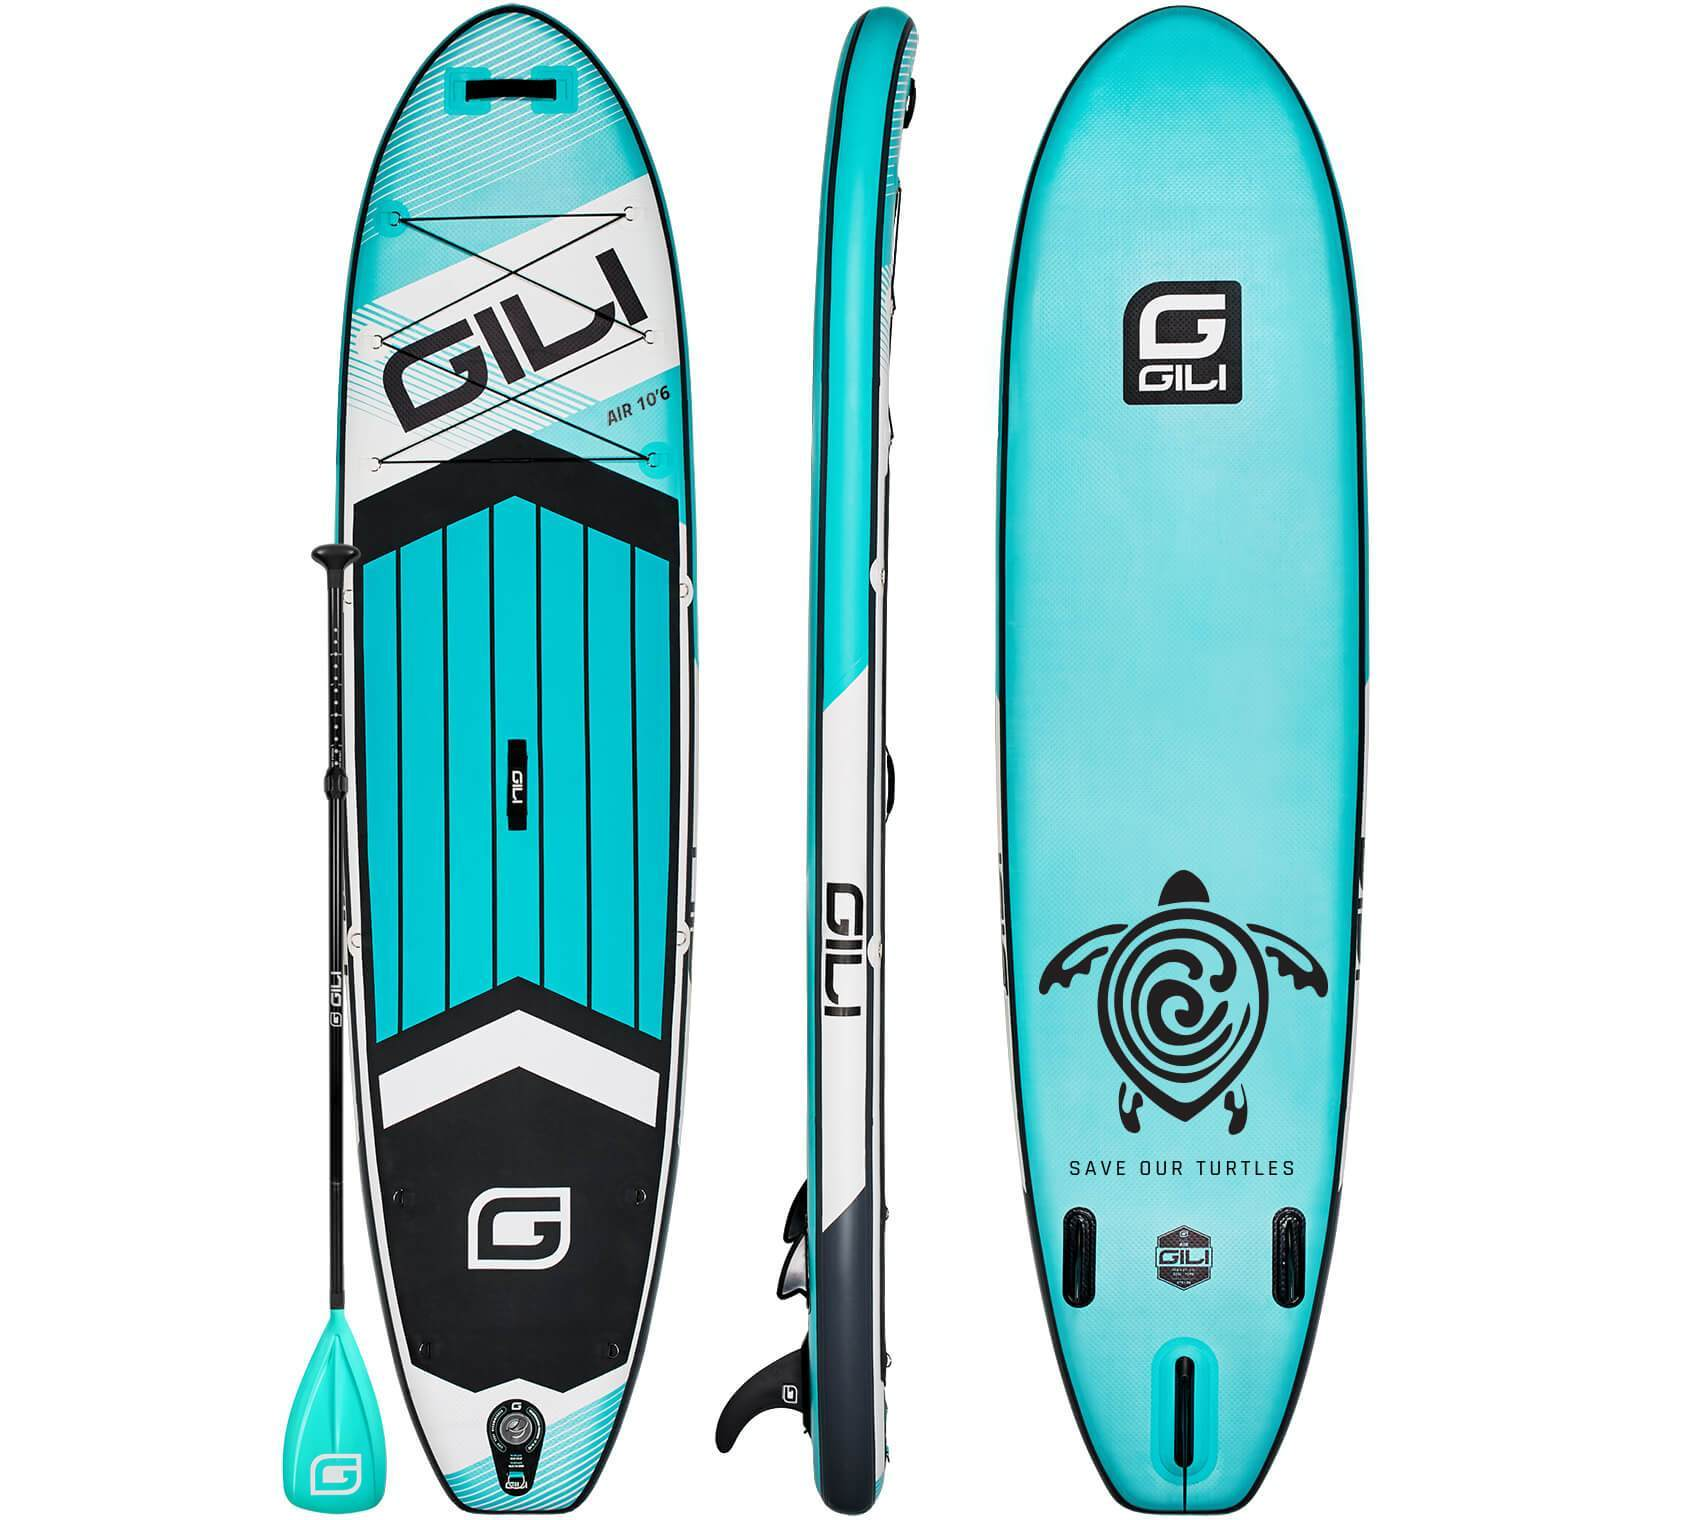 GILI Air Inflatable Stand Up Paddle Board